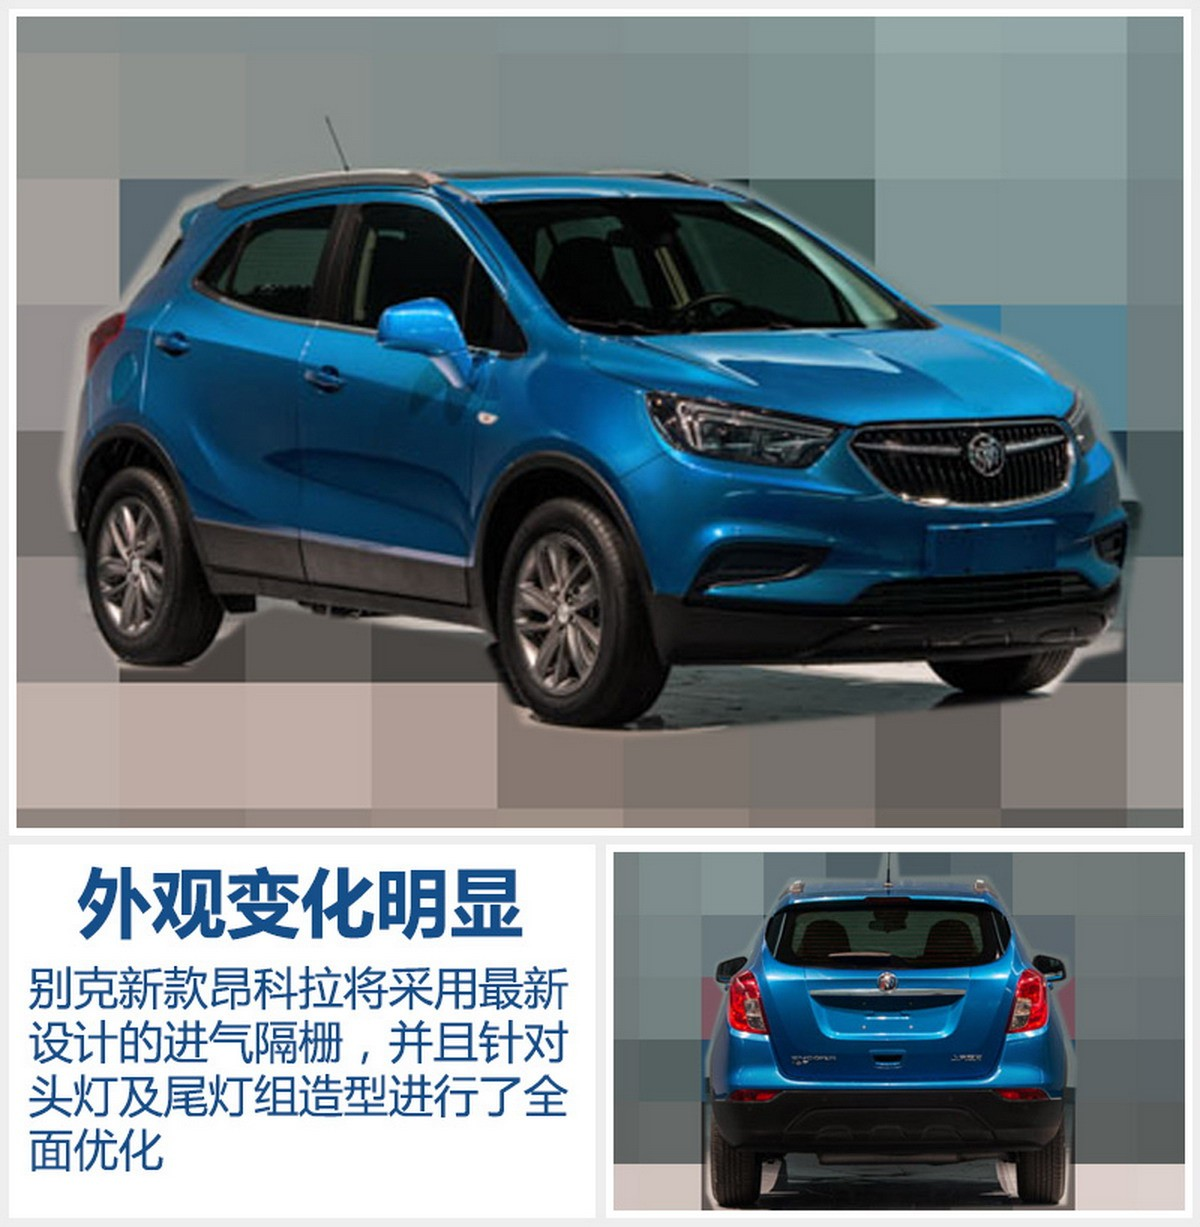 2017 buick encore facelift leaks ahead of new york auto show autoevolution. Black Bedroom Furniture Sets. Home Design Ideas